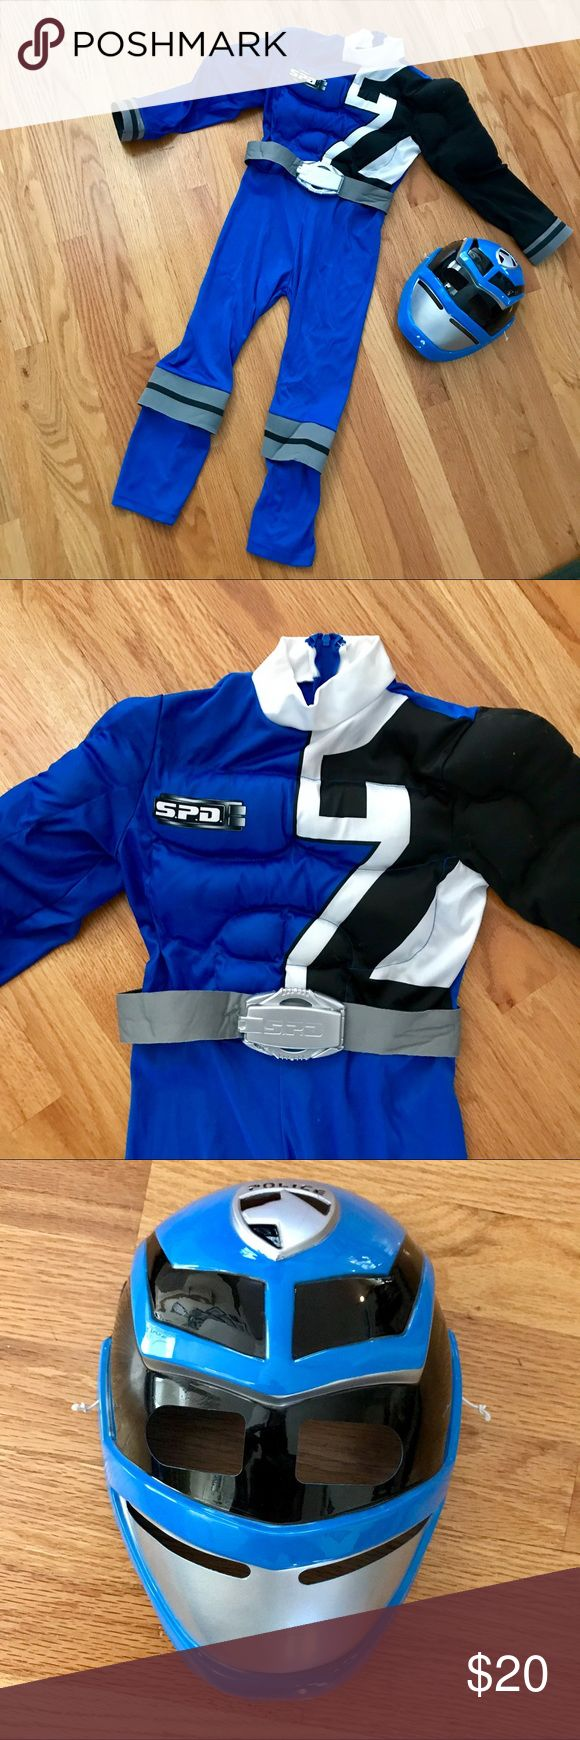 "👫KIDS Halloween  🎃 Costume Blue Power Rangers costume with built in muscles! Matching mask with elastic band in back. Zipper from waist to neckline for easy on/off. We must have removed the tag, but in comparing to the pink Power Ranger costume I am estimating the size. Length 36"", Inseam 18"", PTP 13"". Power Rangers Costumes Halloween"